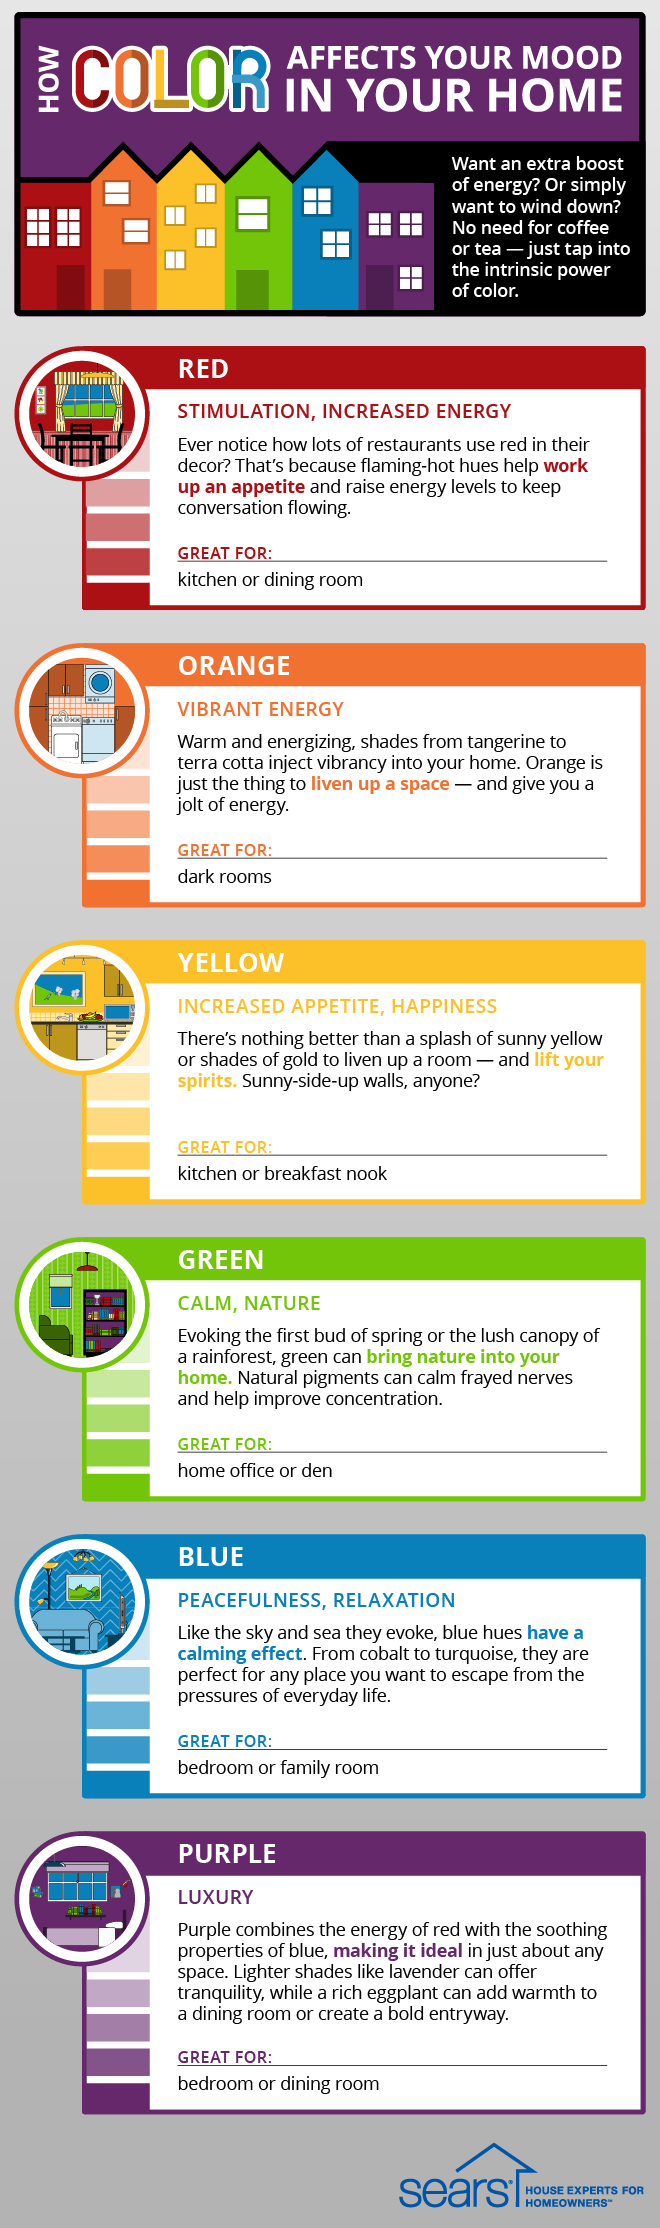 Mood Colors how color affects your mood - home design